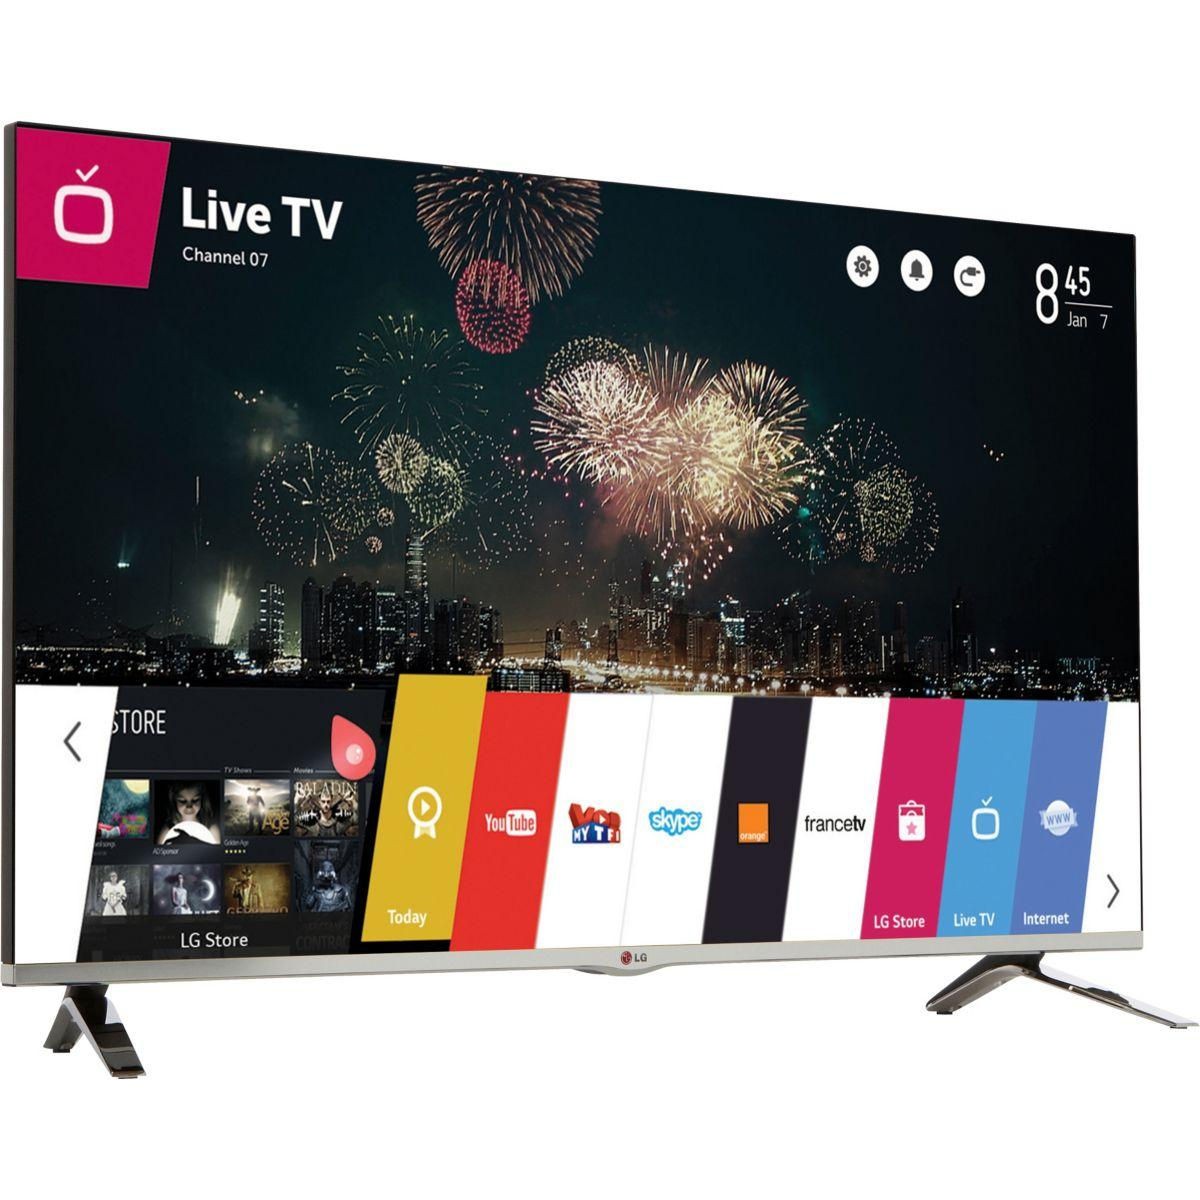 TV LG 47LB670V 700Hz 3D SMART TV